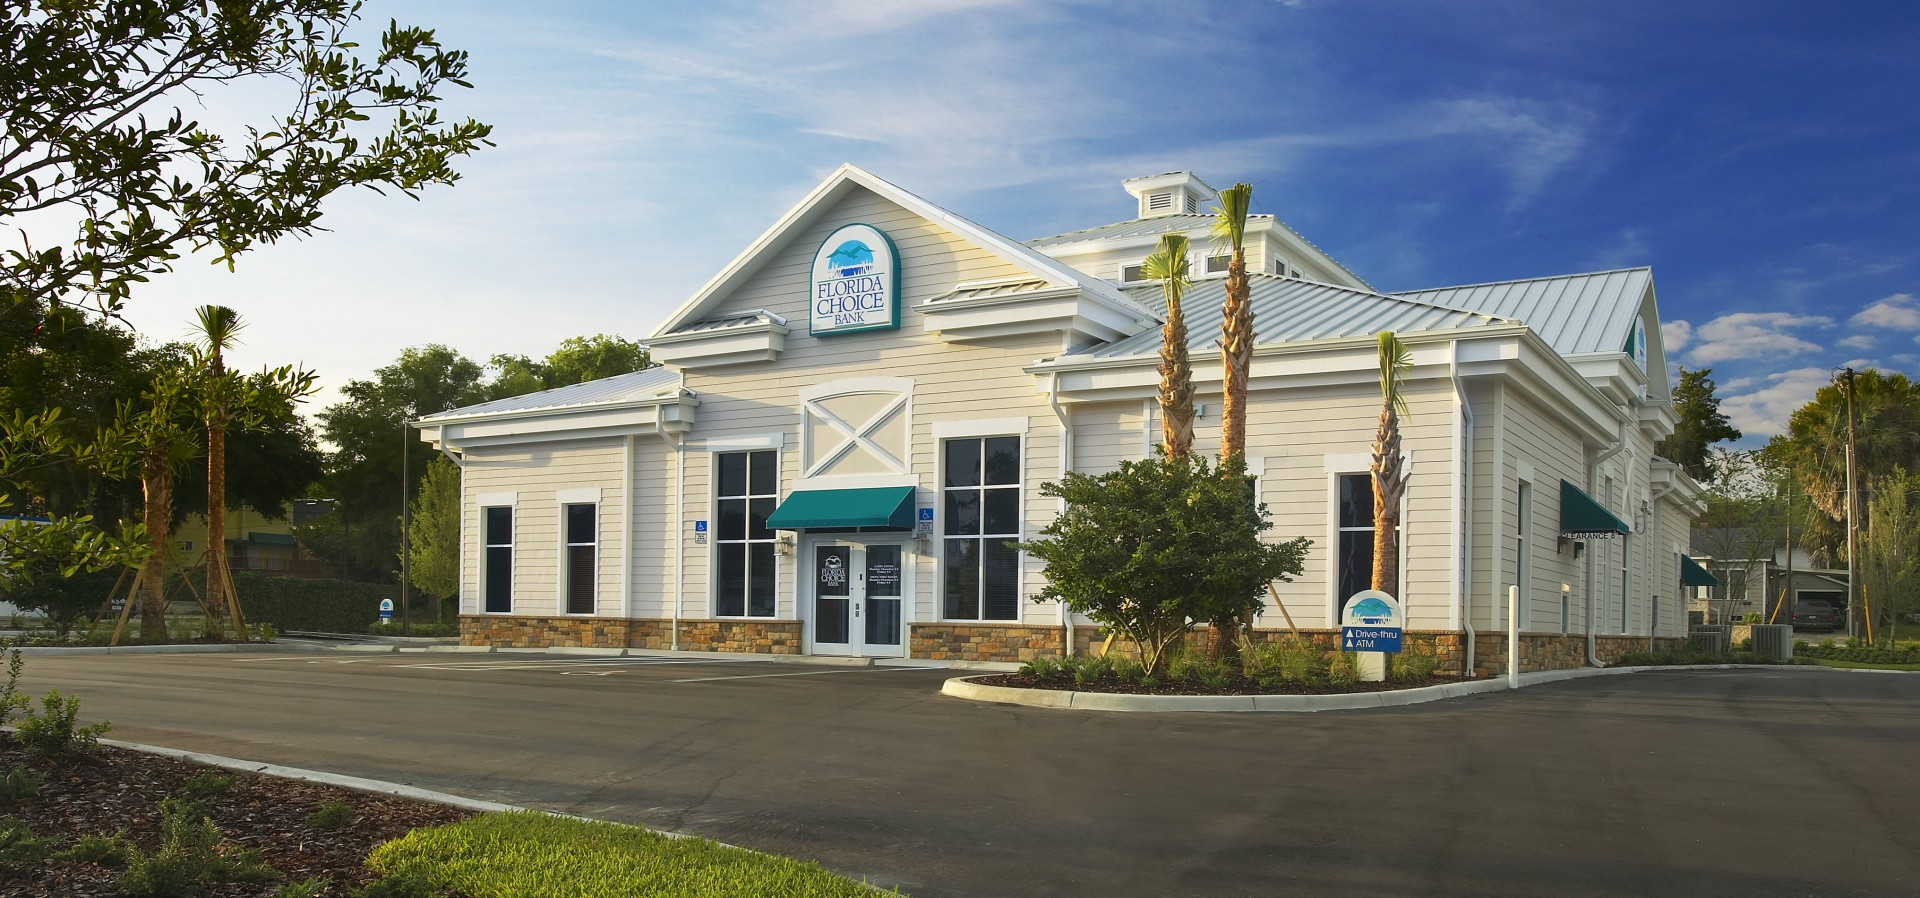 RBC FLORIDA CHOICE BANK (6)